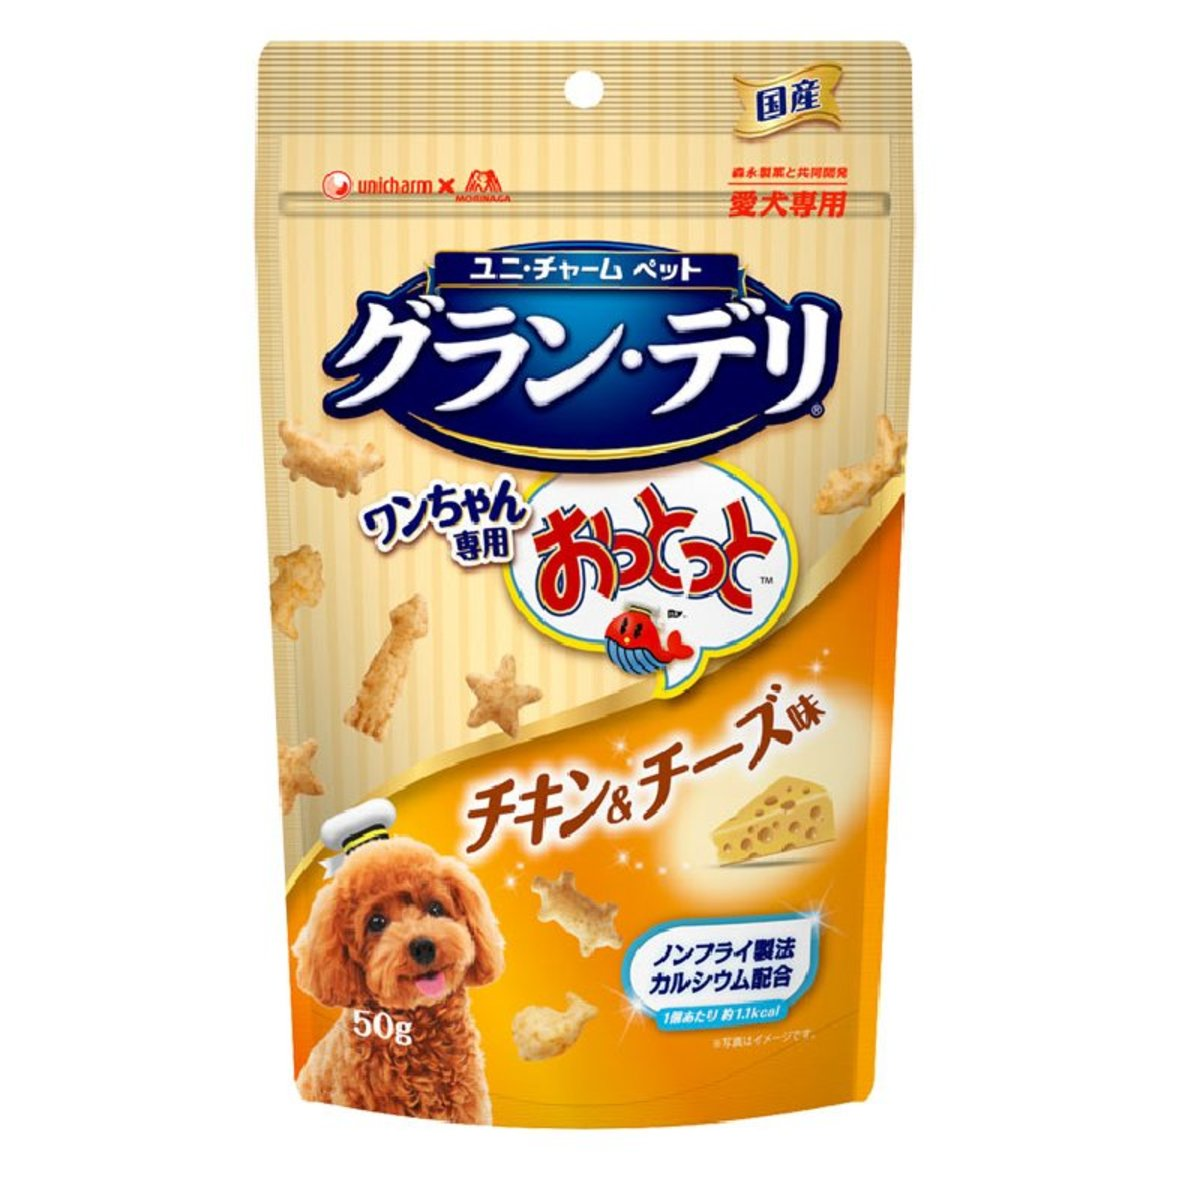 Toy Poodle Dog-Specific Snack(Orange) #Chicken & Cheese 50g